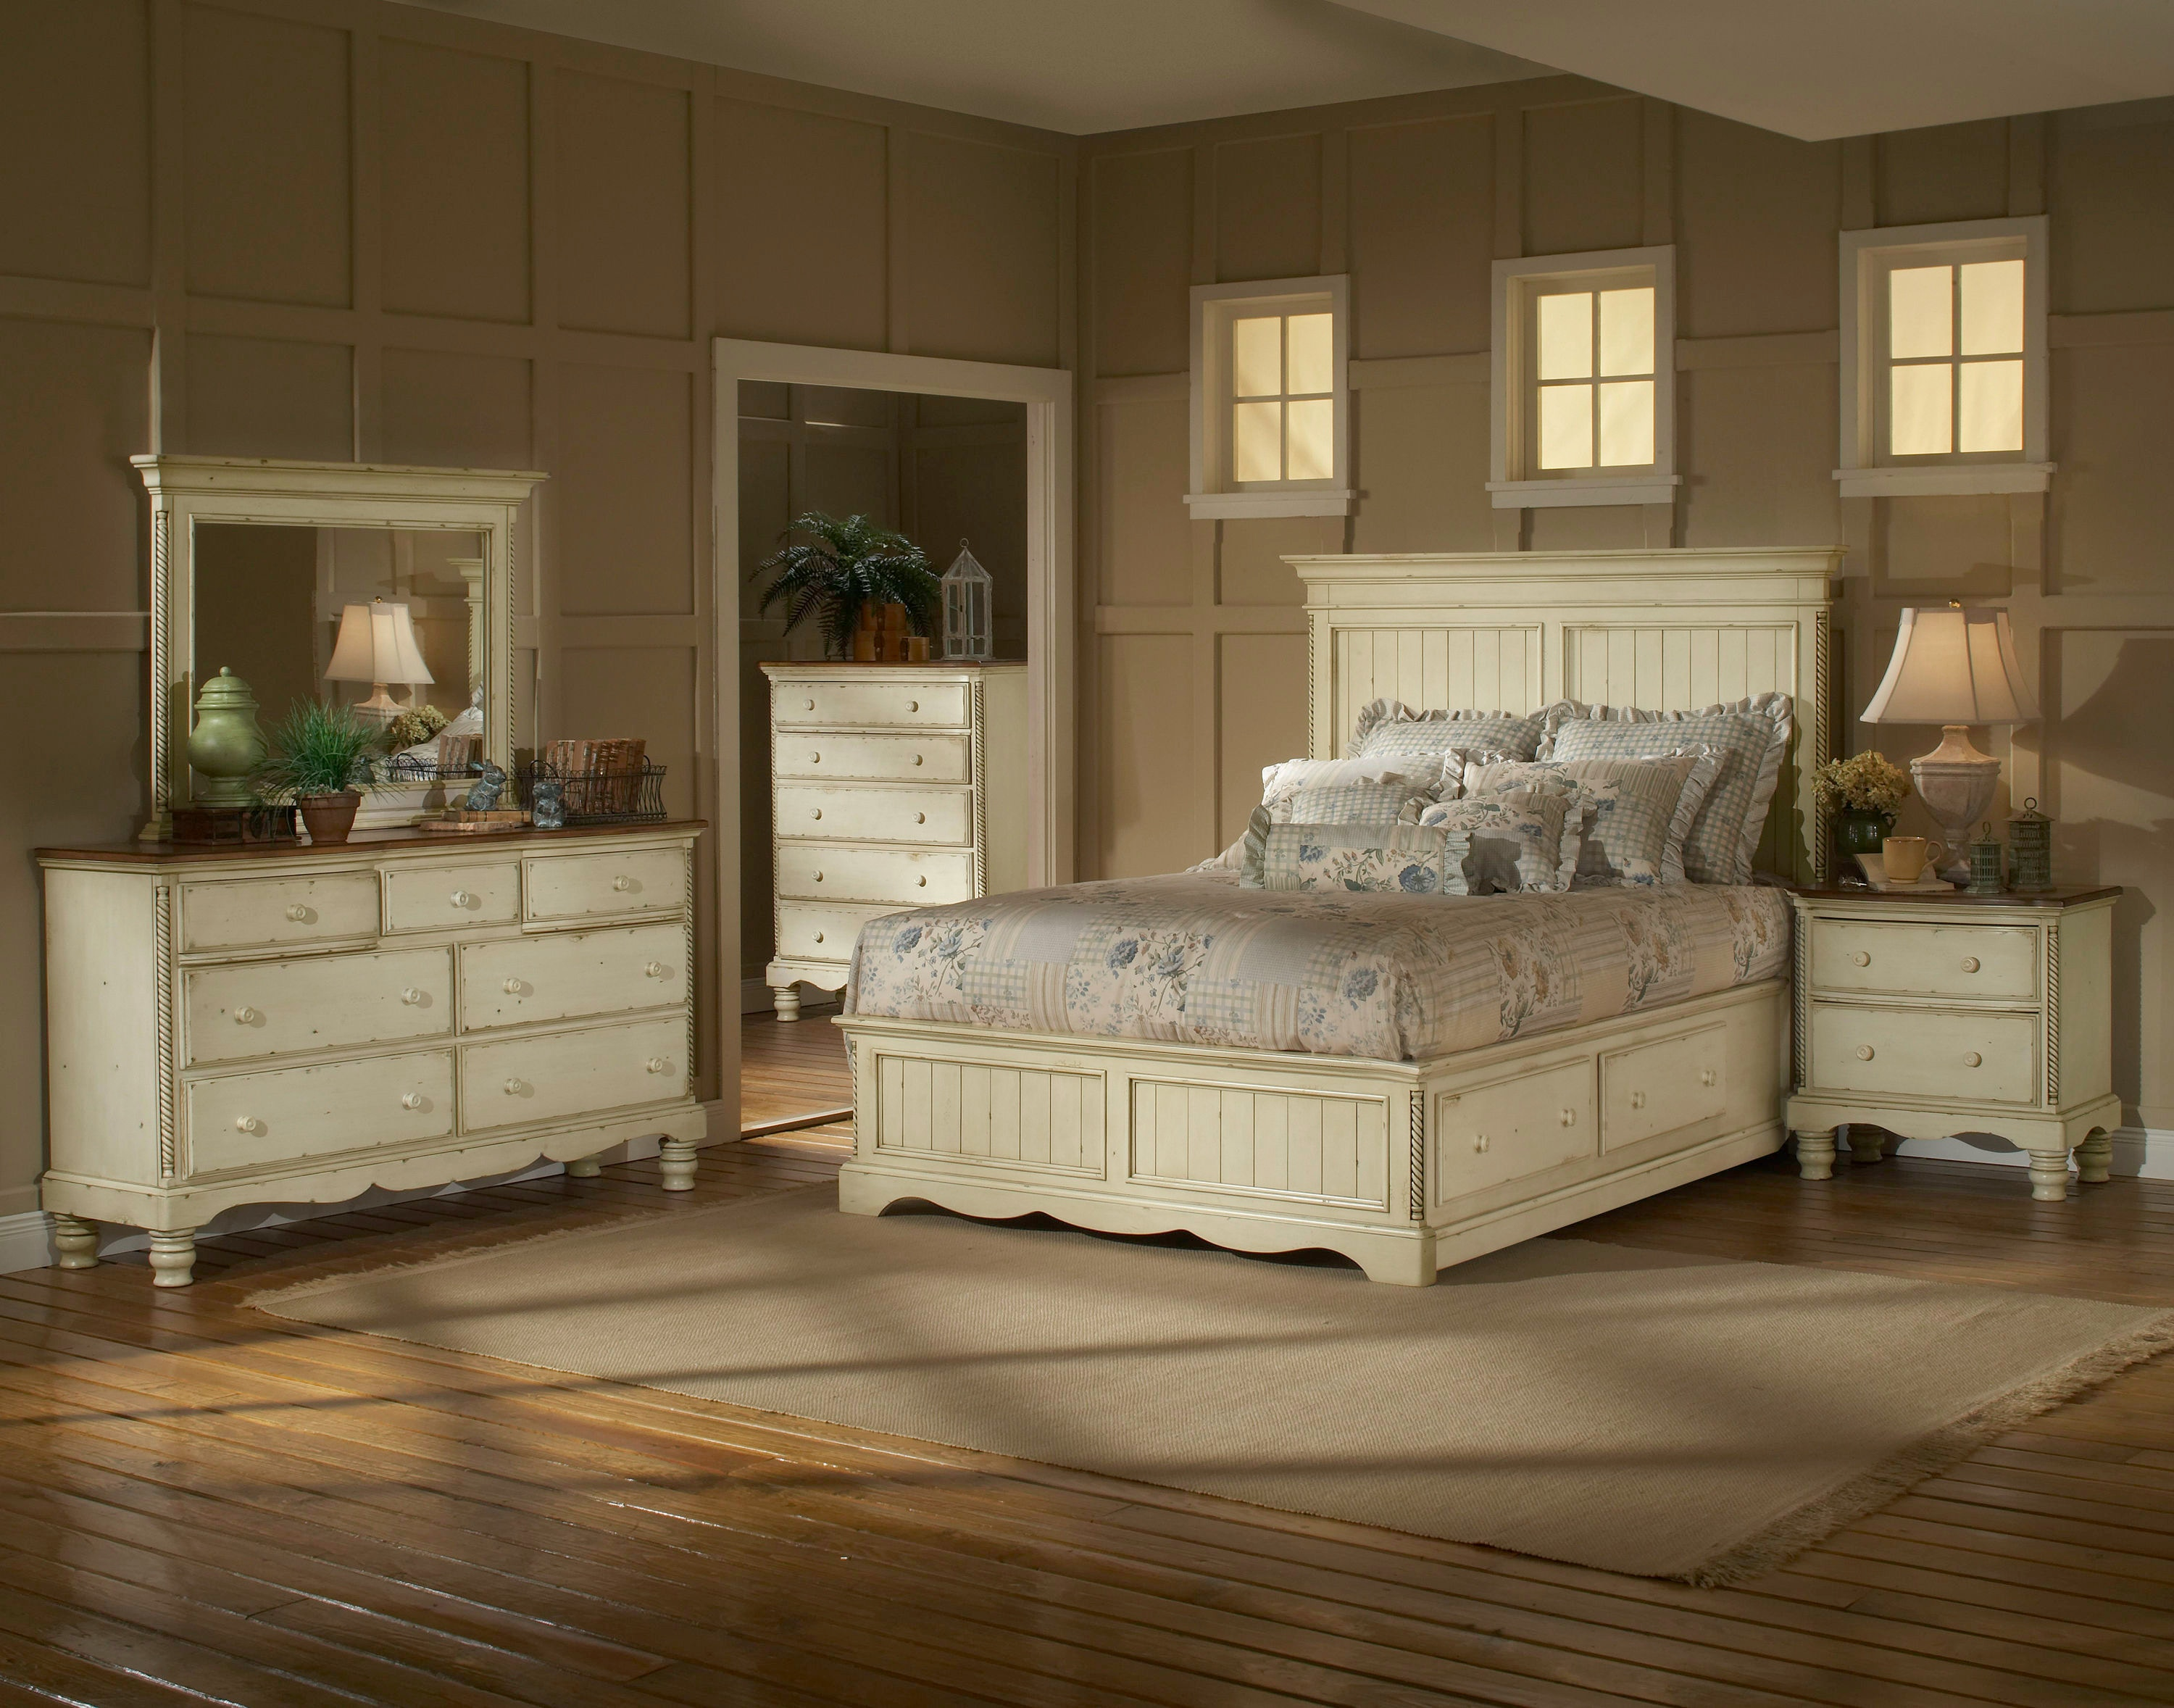 Hillsdale Furniture Bedroom Wilshire Panel Bed Footboard   King 1172 683 At  Michael Anthony And Suffern Furniture Gallery